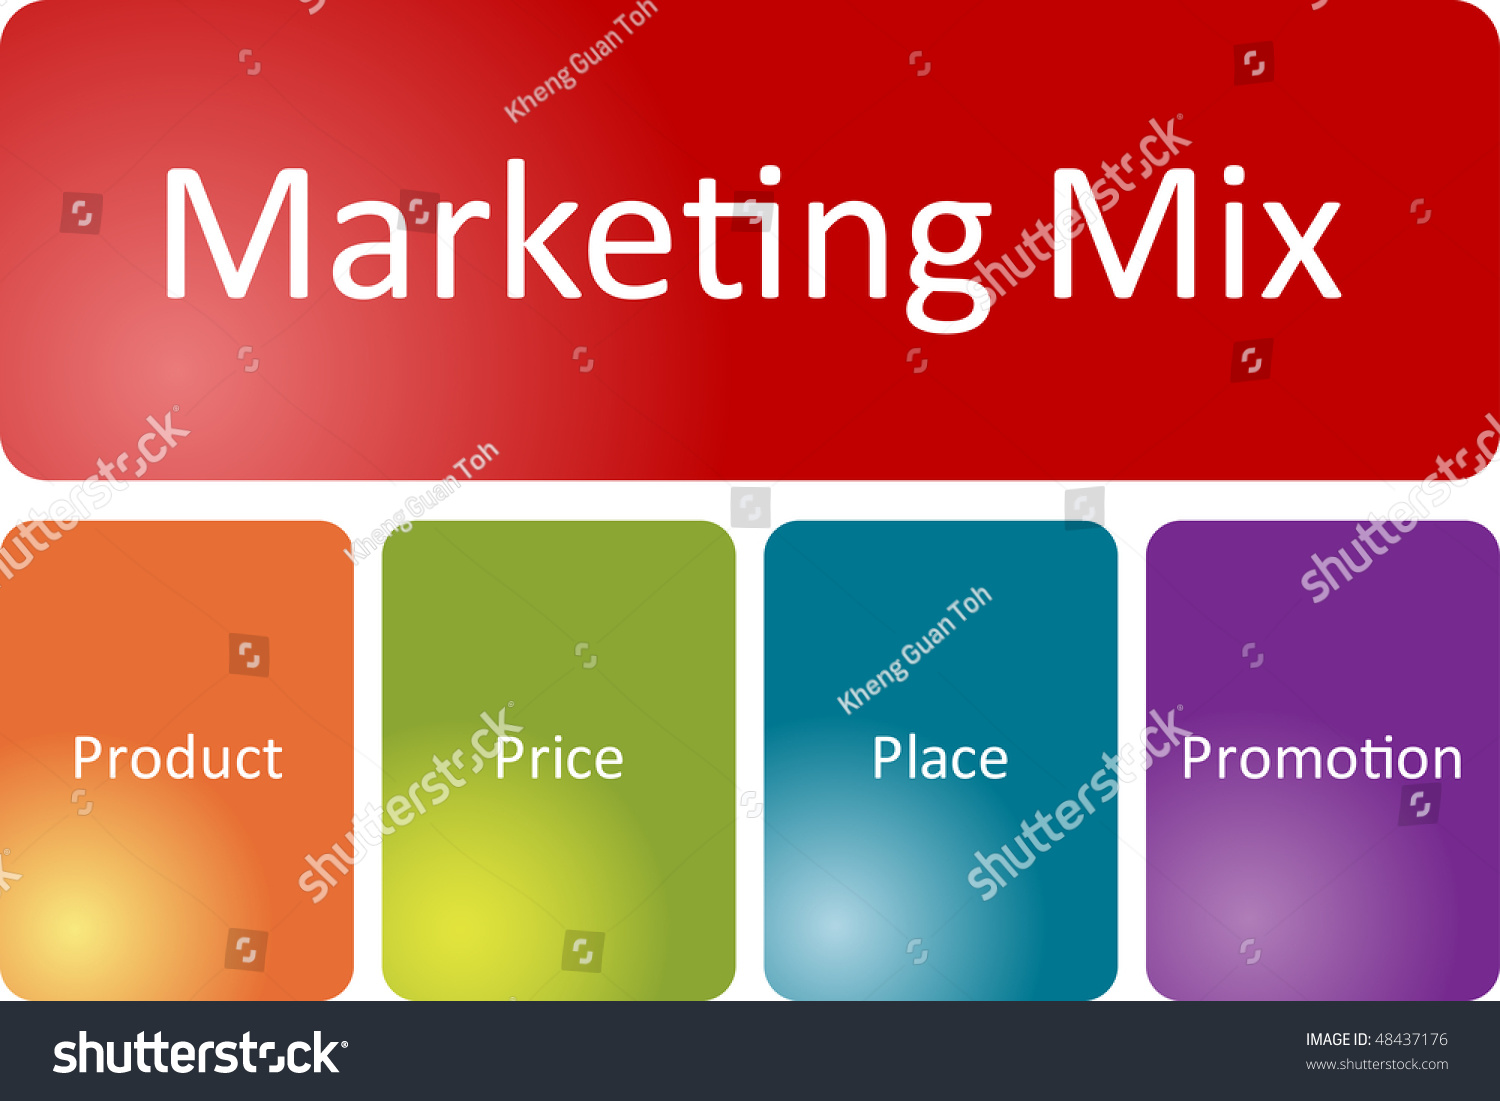 marketing mix business diagram management strategy concept chart    marketing mix business diagram management strategy concept chart illustration preview  save to a lightbox